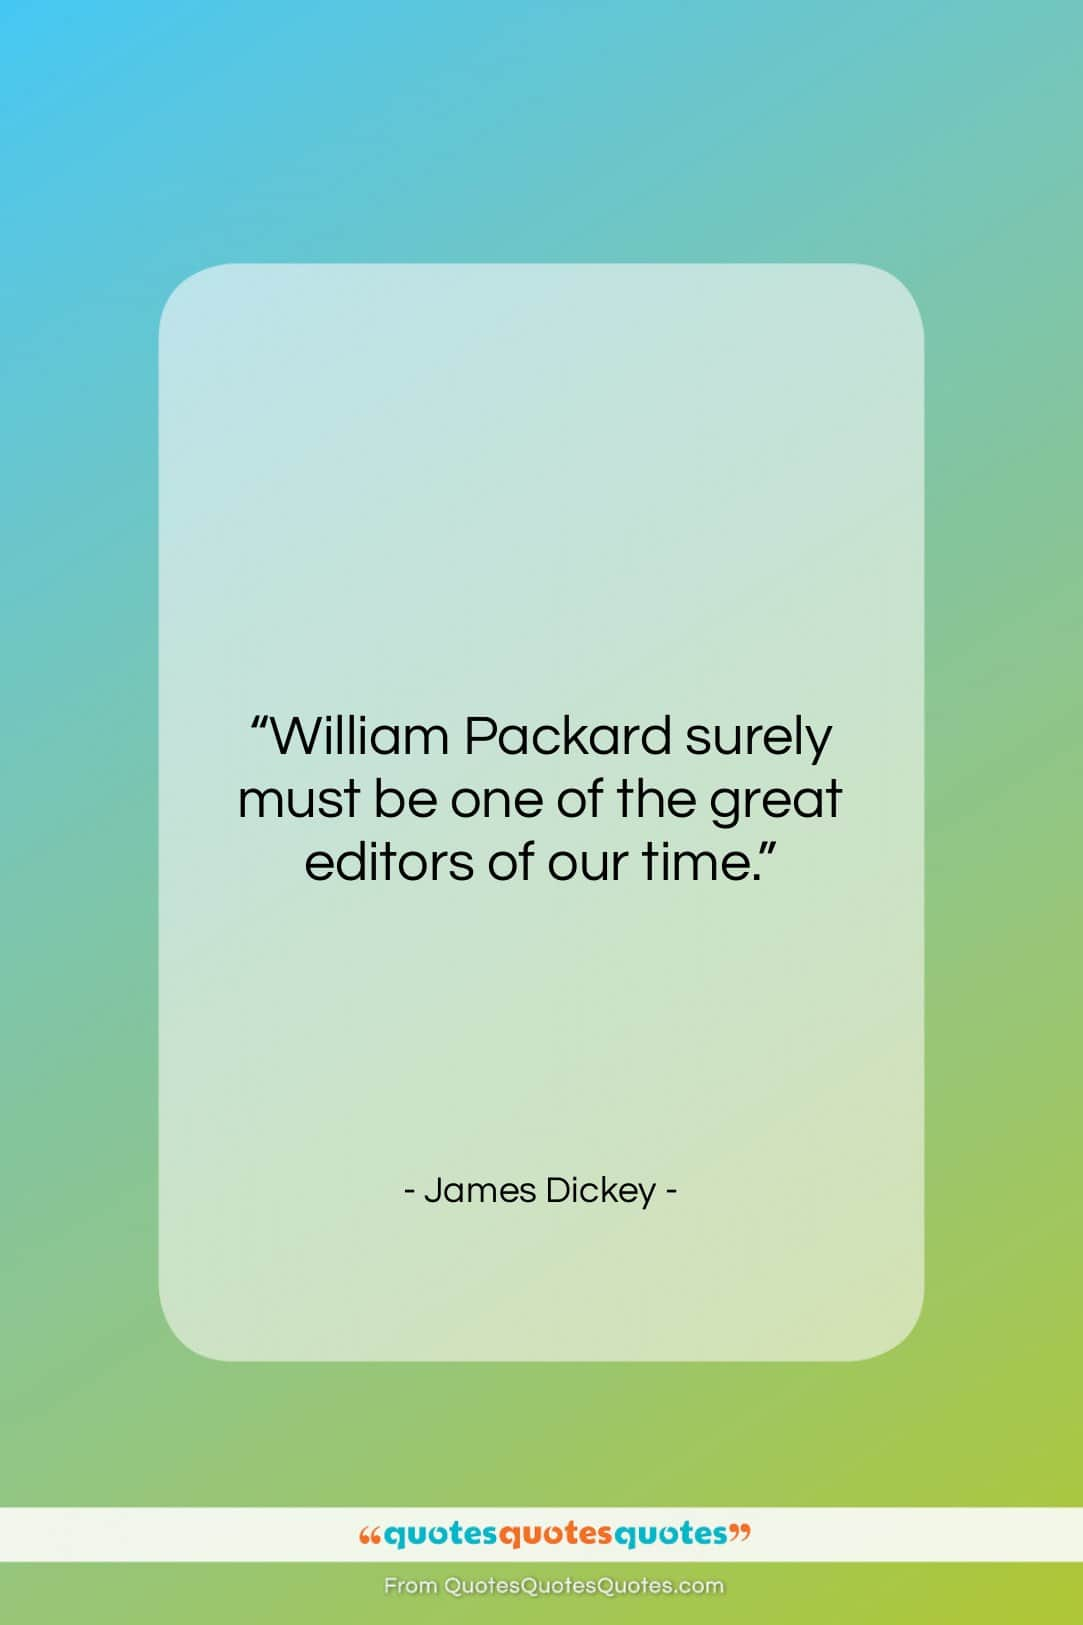 """James Dickey quote: """"William Packard surely must be one of…""""- at QuotesQuotesQuotes.com"""